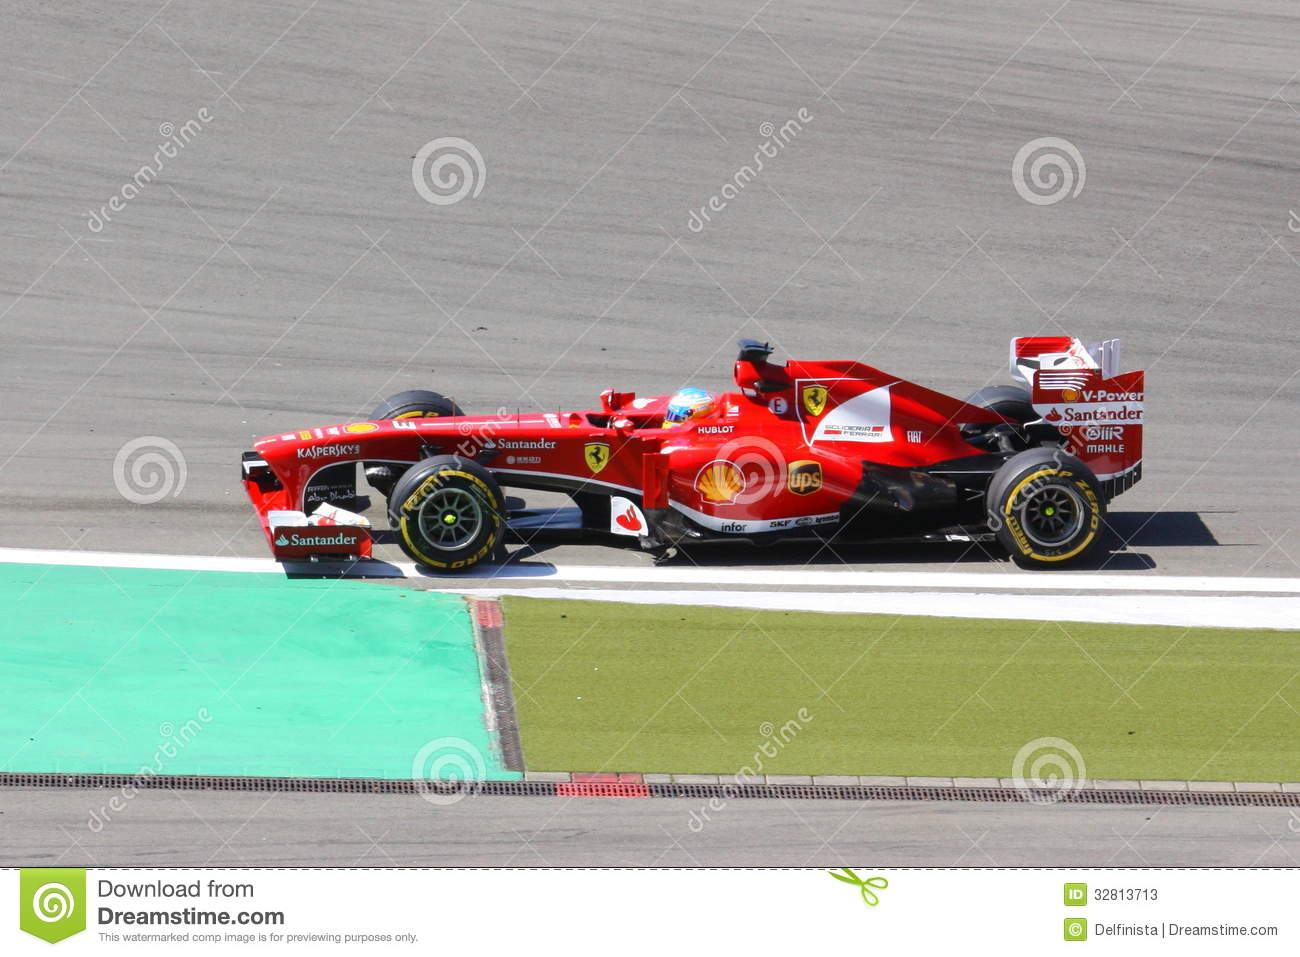 Fernando Alonso F1 Grand Prix F1 Racing Car Ferrari Driver Fernando Alonso Editorial Stock